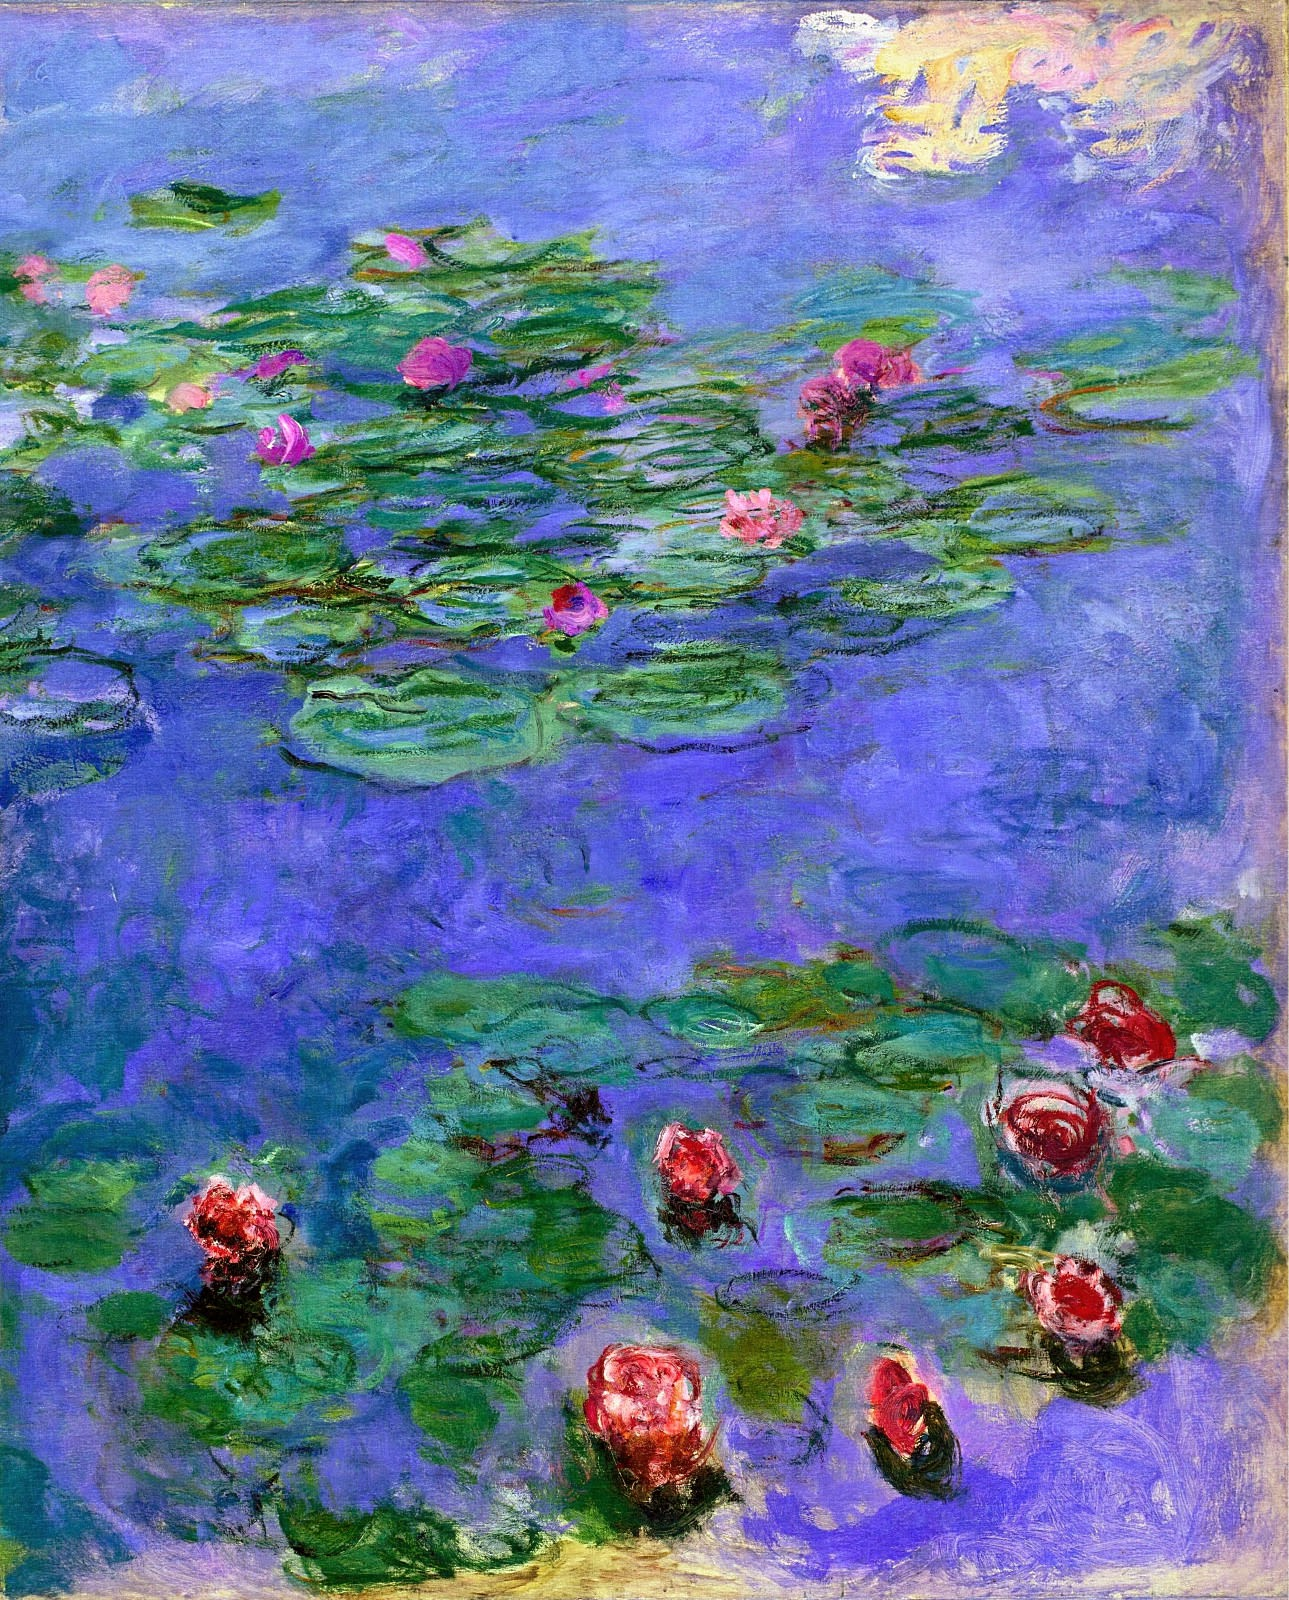 art artists claude monet part 24 1897 1922 water lilies